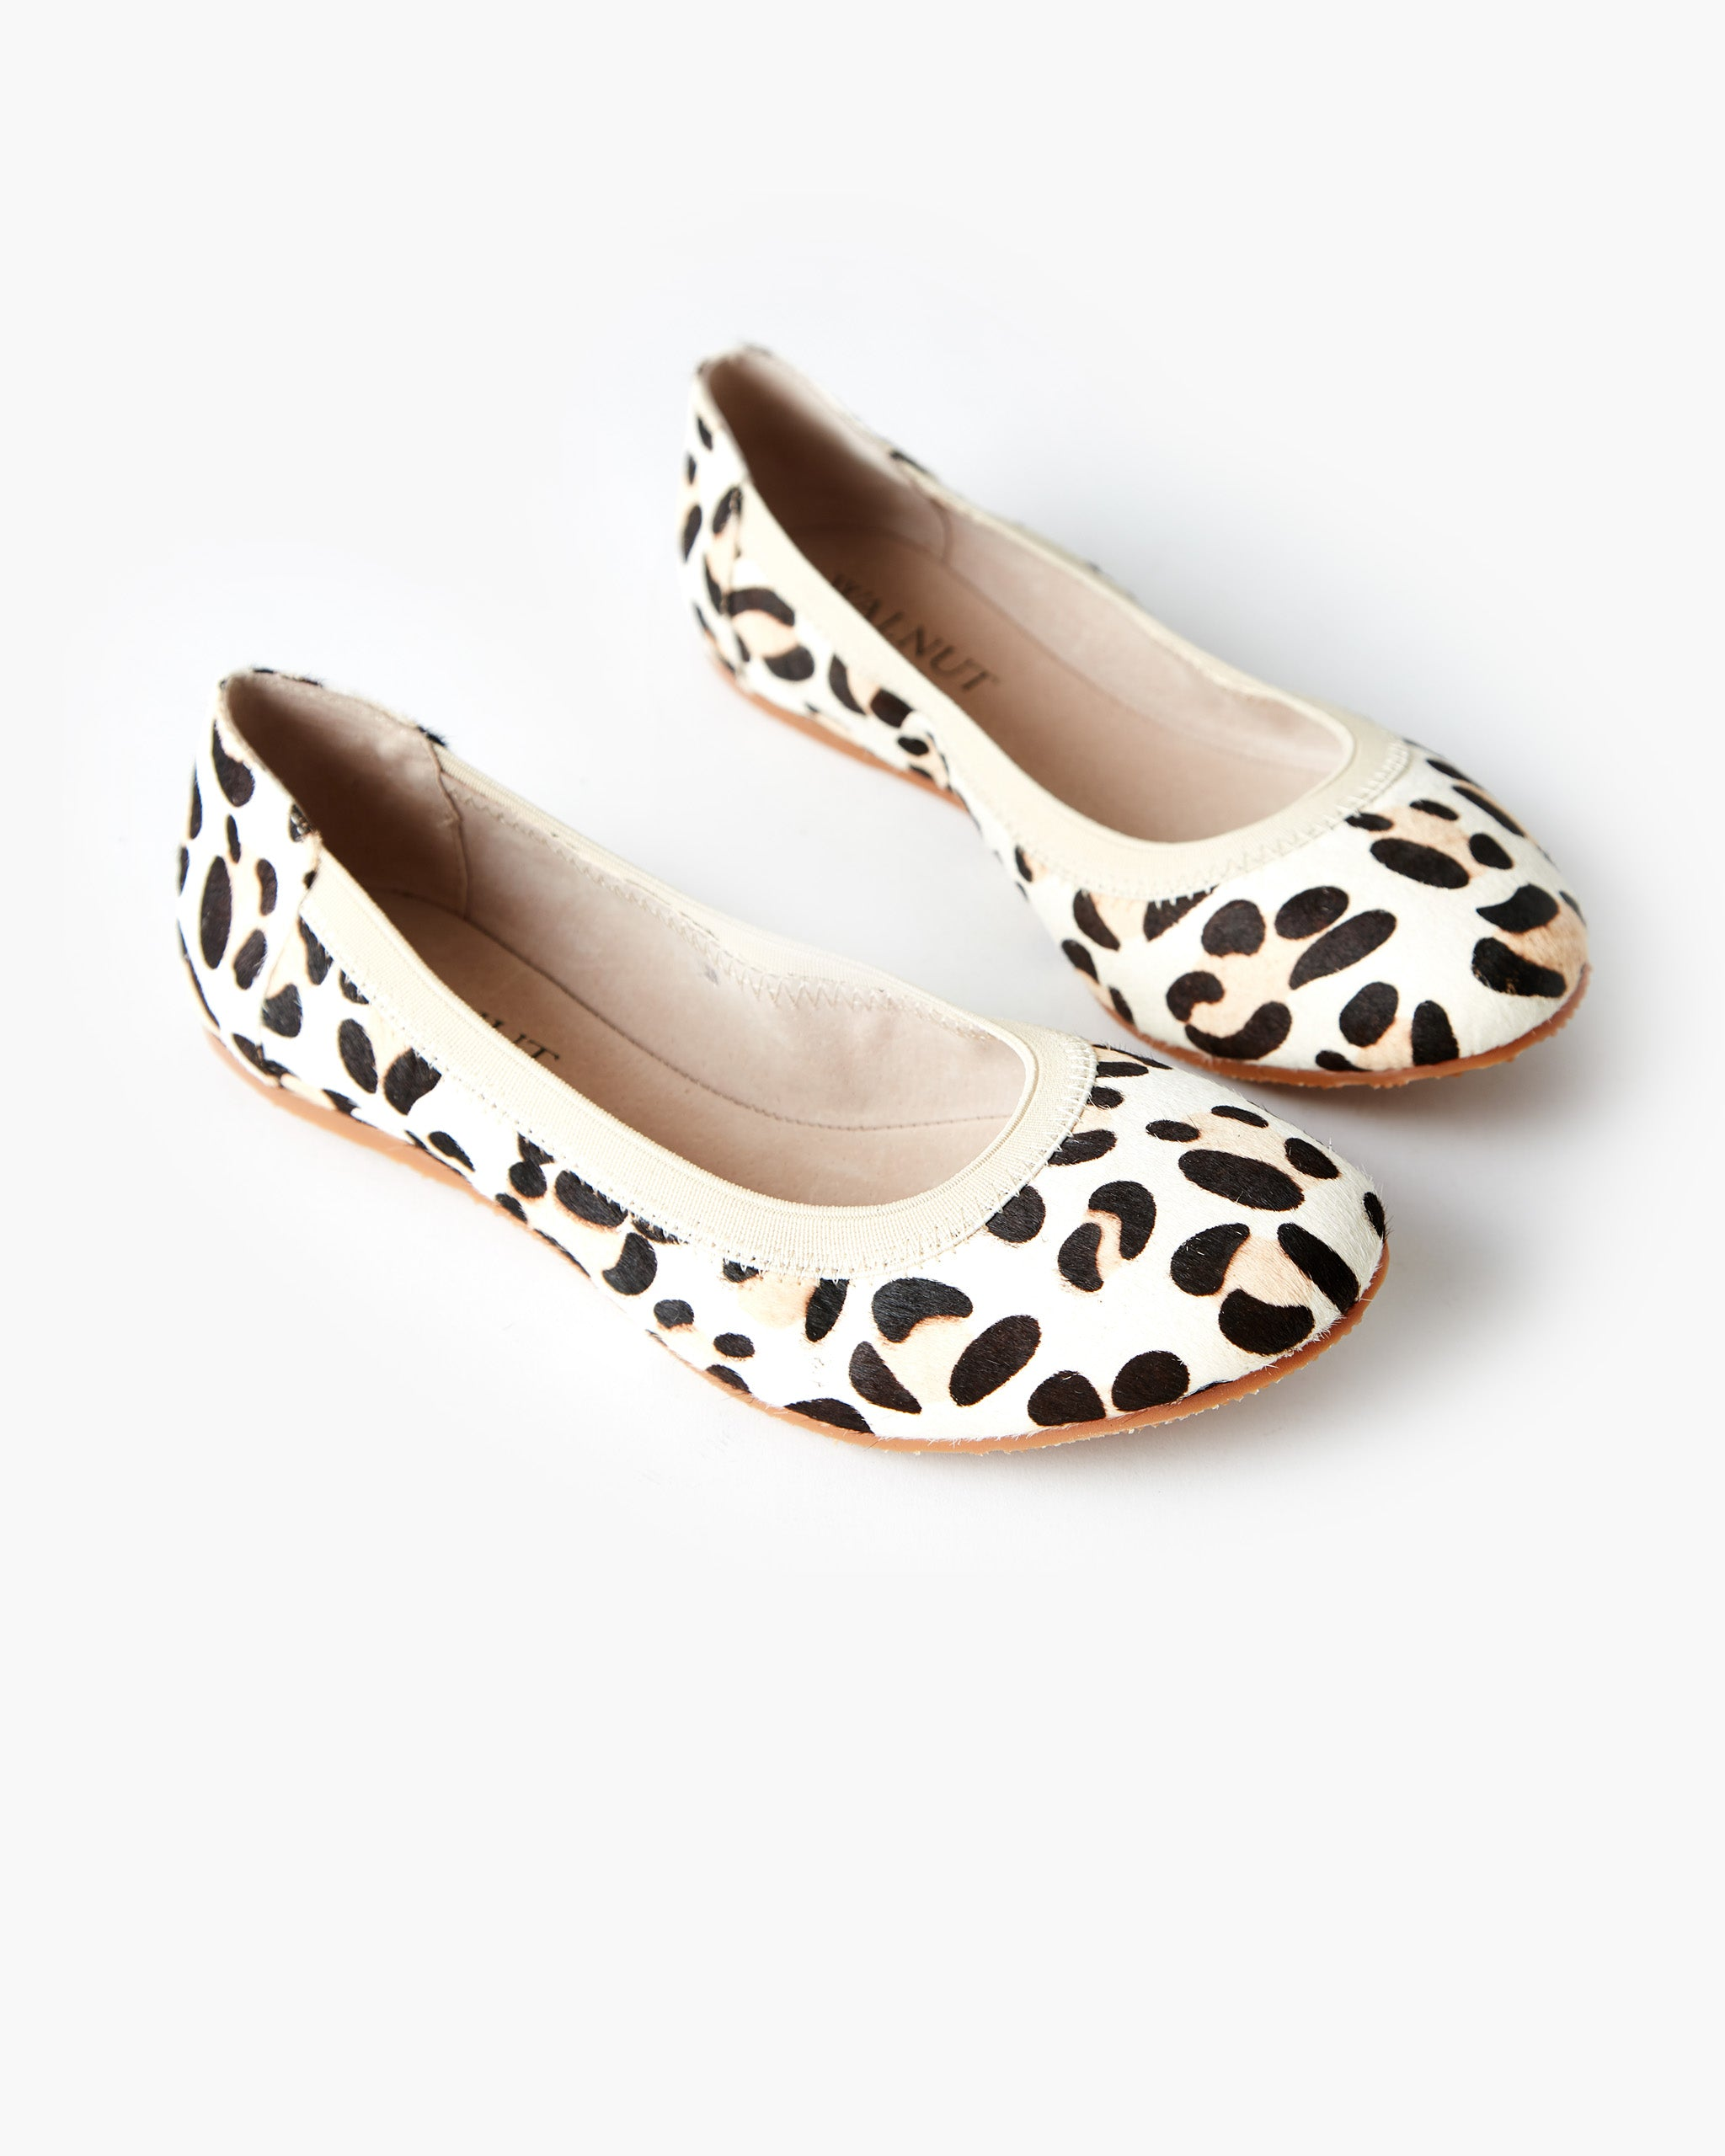 Ava Leather Ballet Flat - White Leopard Pony